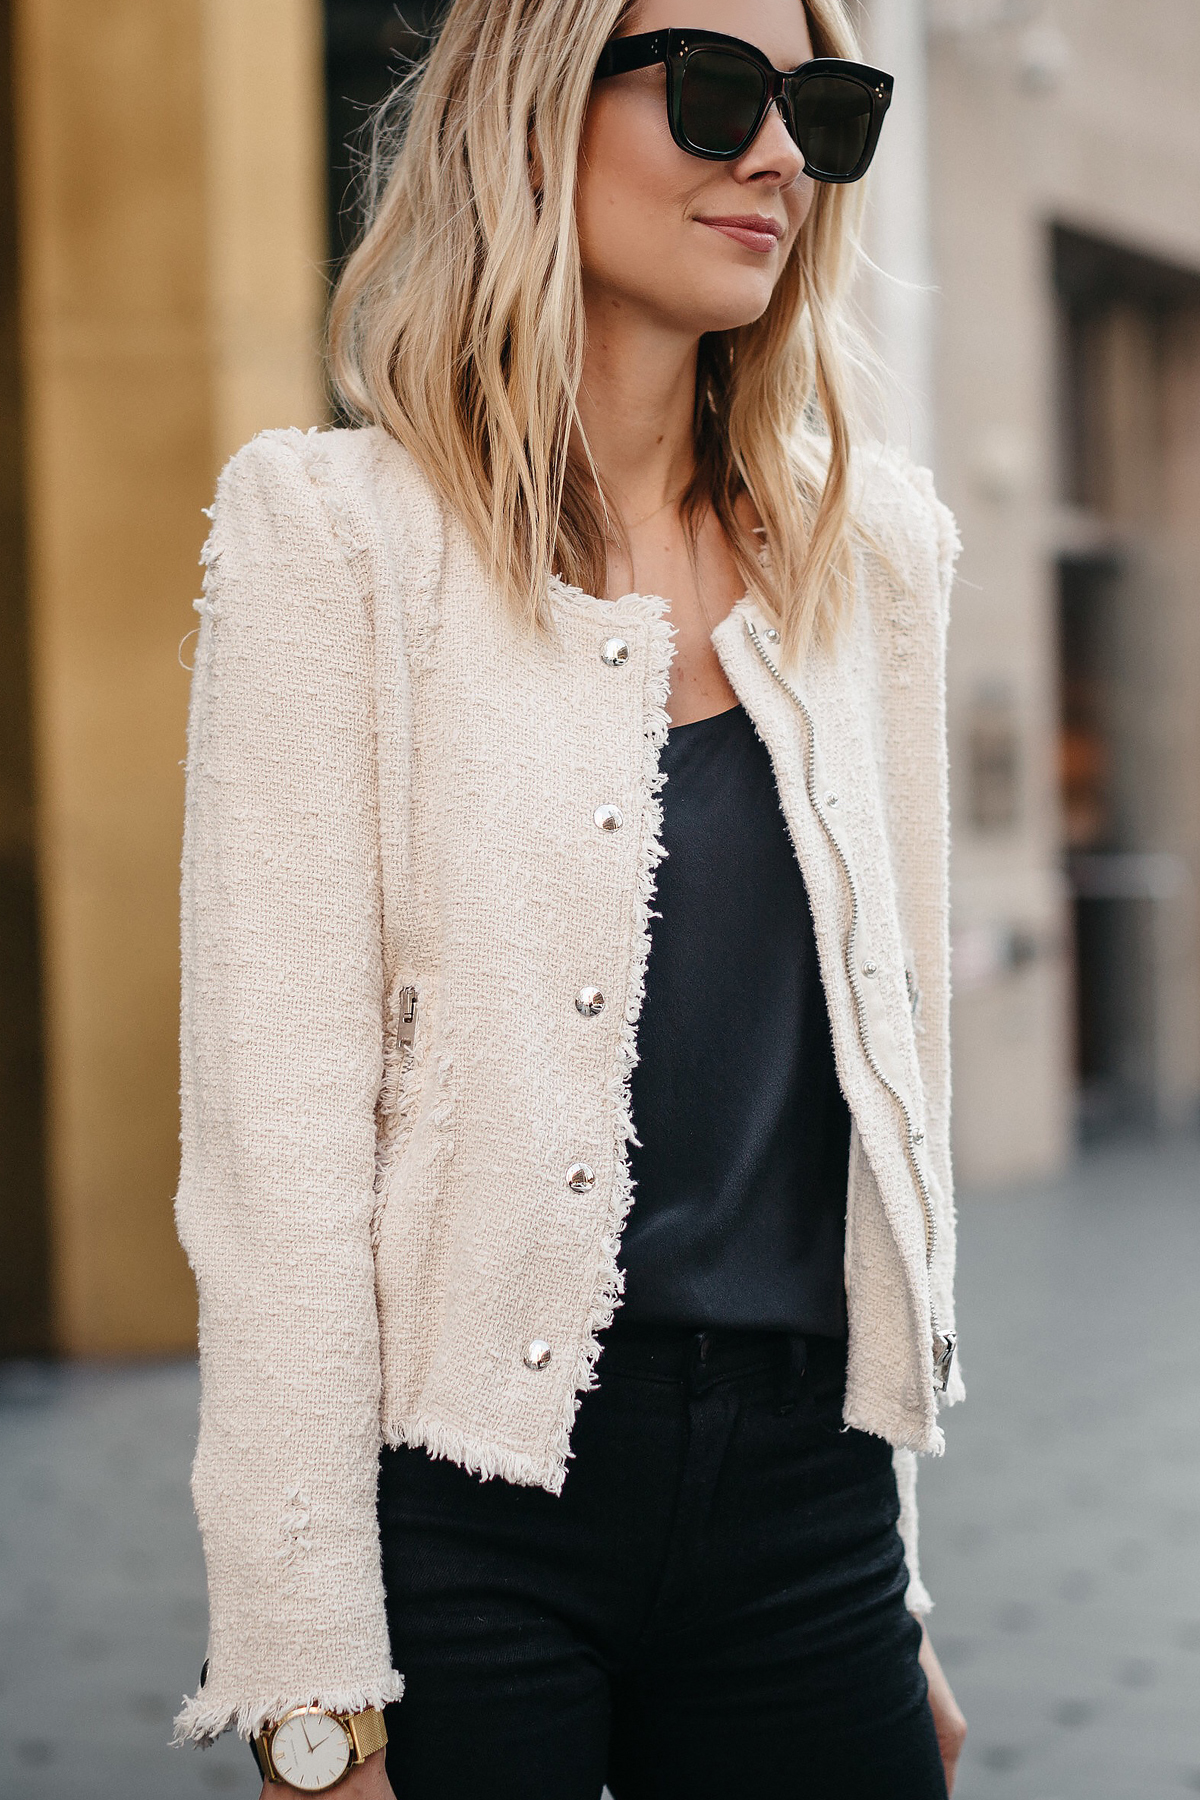 Blonde Woman Wearing IRO Agnette Tweed Jacket Fashion Jackson Dallas Blogger Fashion Blogger Street Style